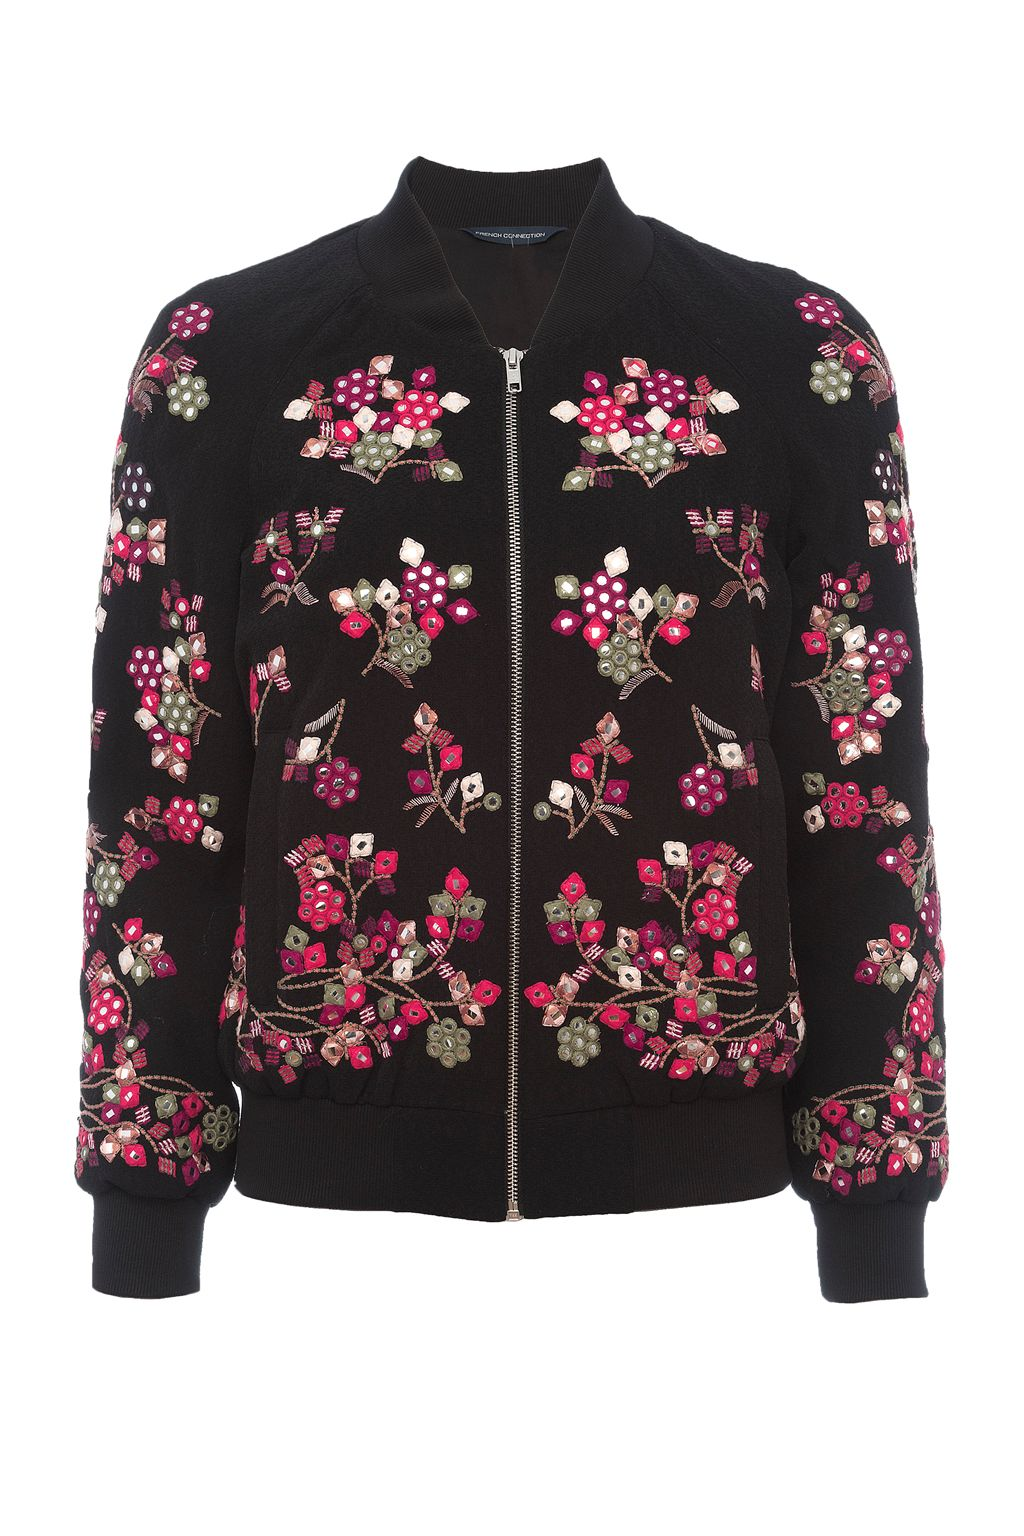 French Connection Gilliam Floral Embroidered Bomber, Black